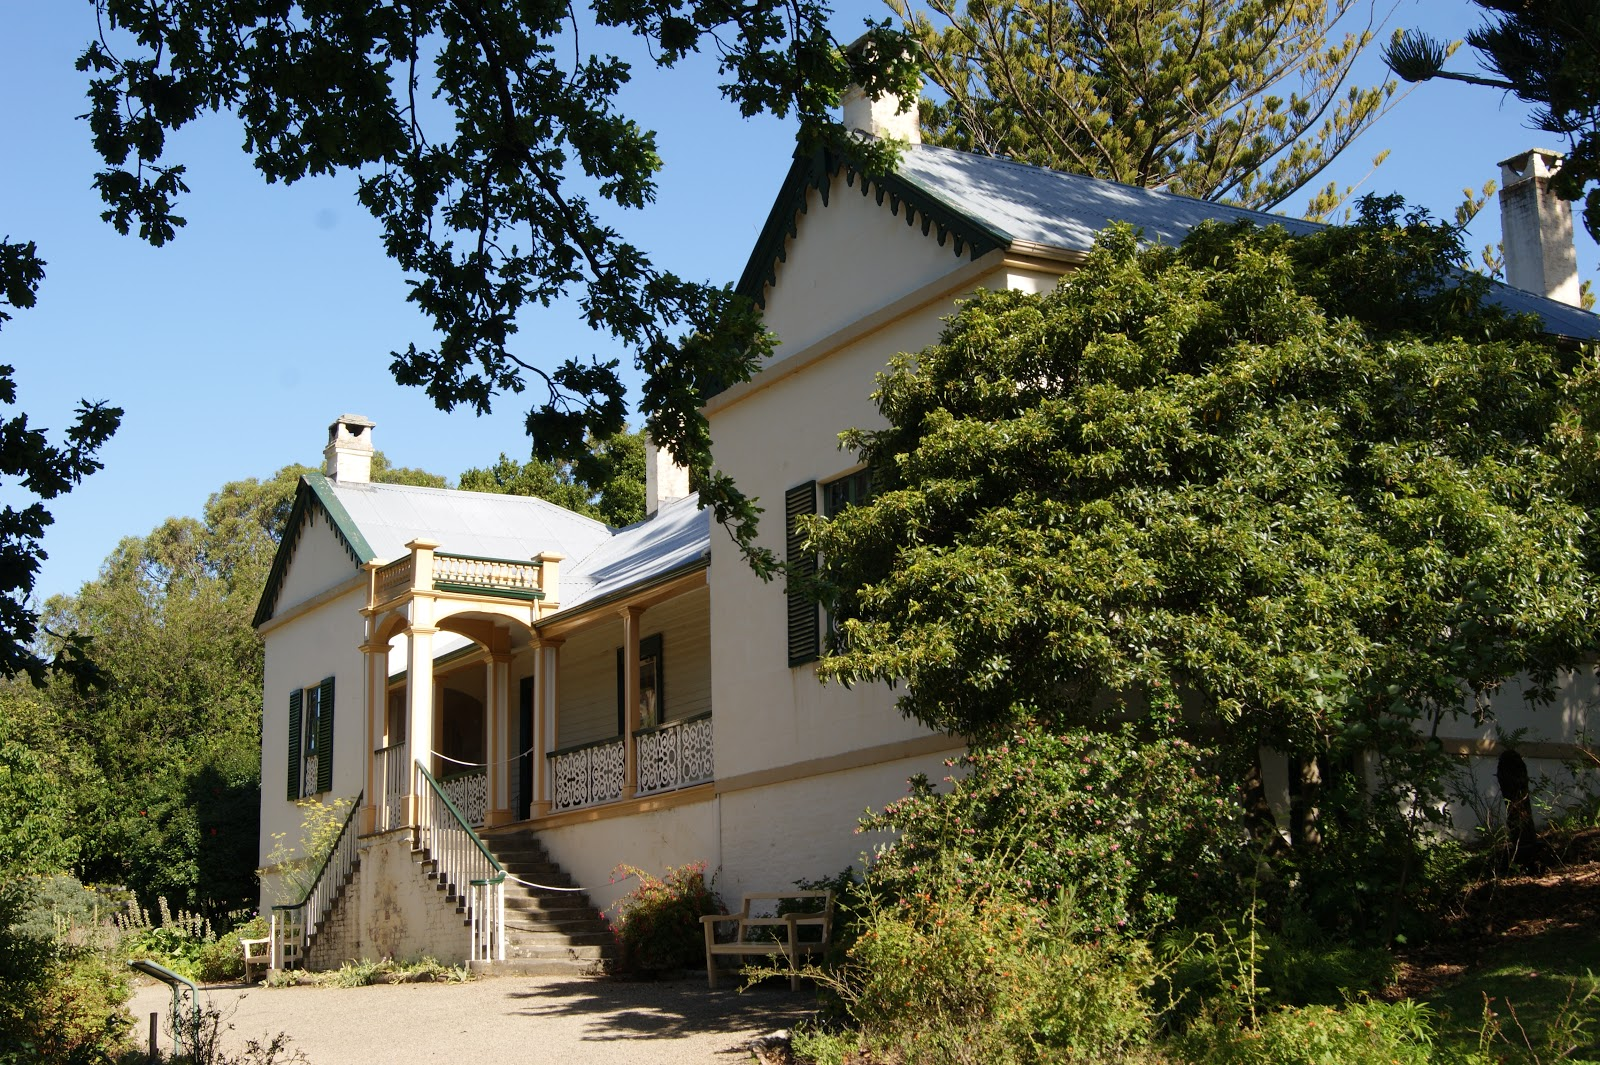 On the convict trail the commandants house port arthur the commandant was port arthurs most senior official a residence befitting his rank and position was erected on high ground on the fringe of settlement in malvernweather Choice Image